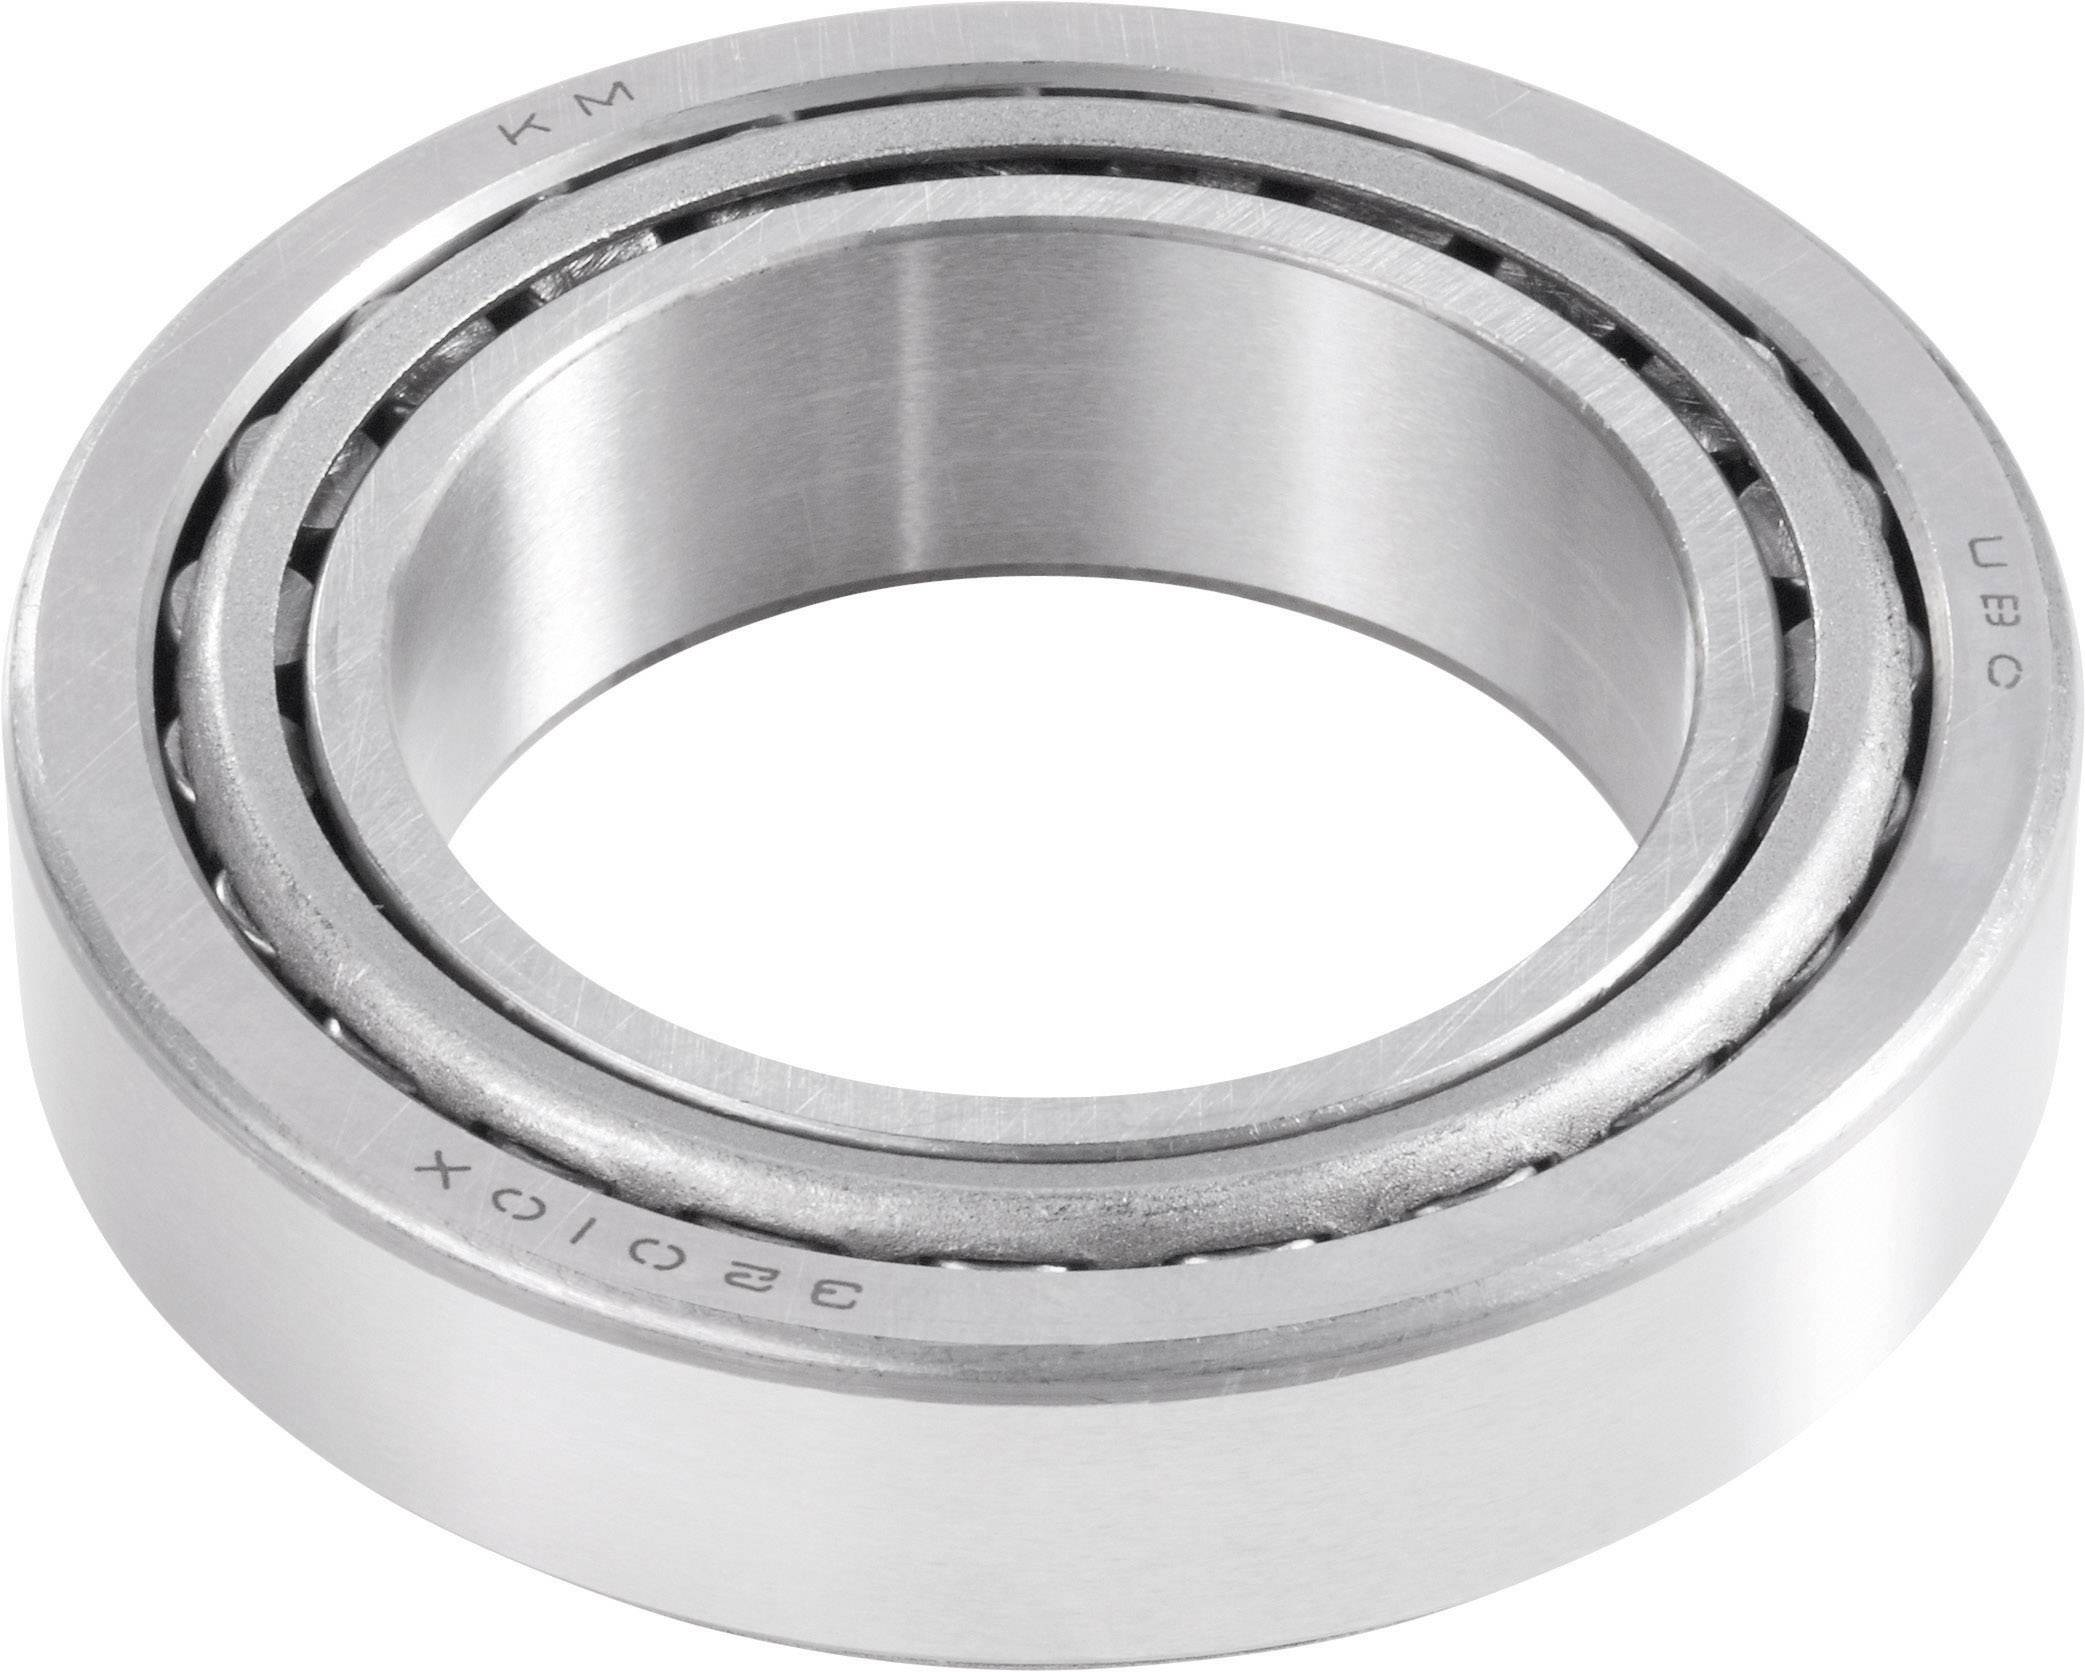 30213 Cylindrical Bearing Chinese Pack of 2